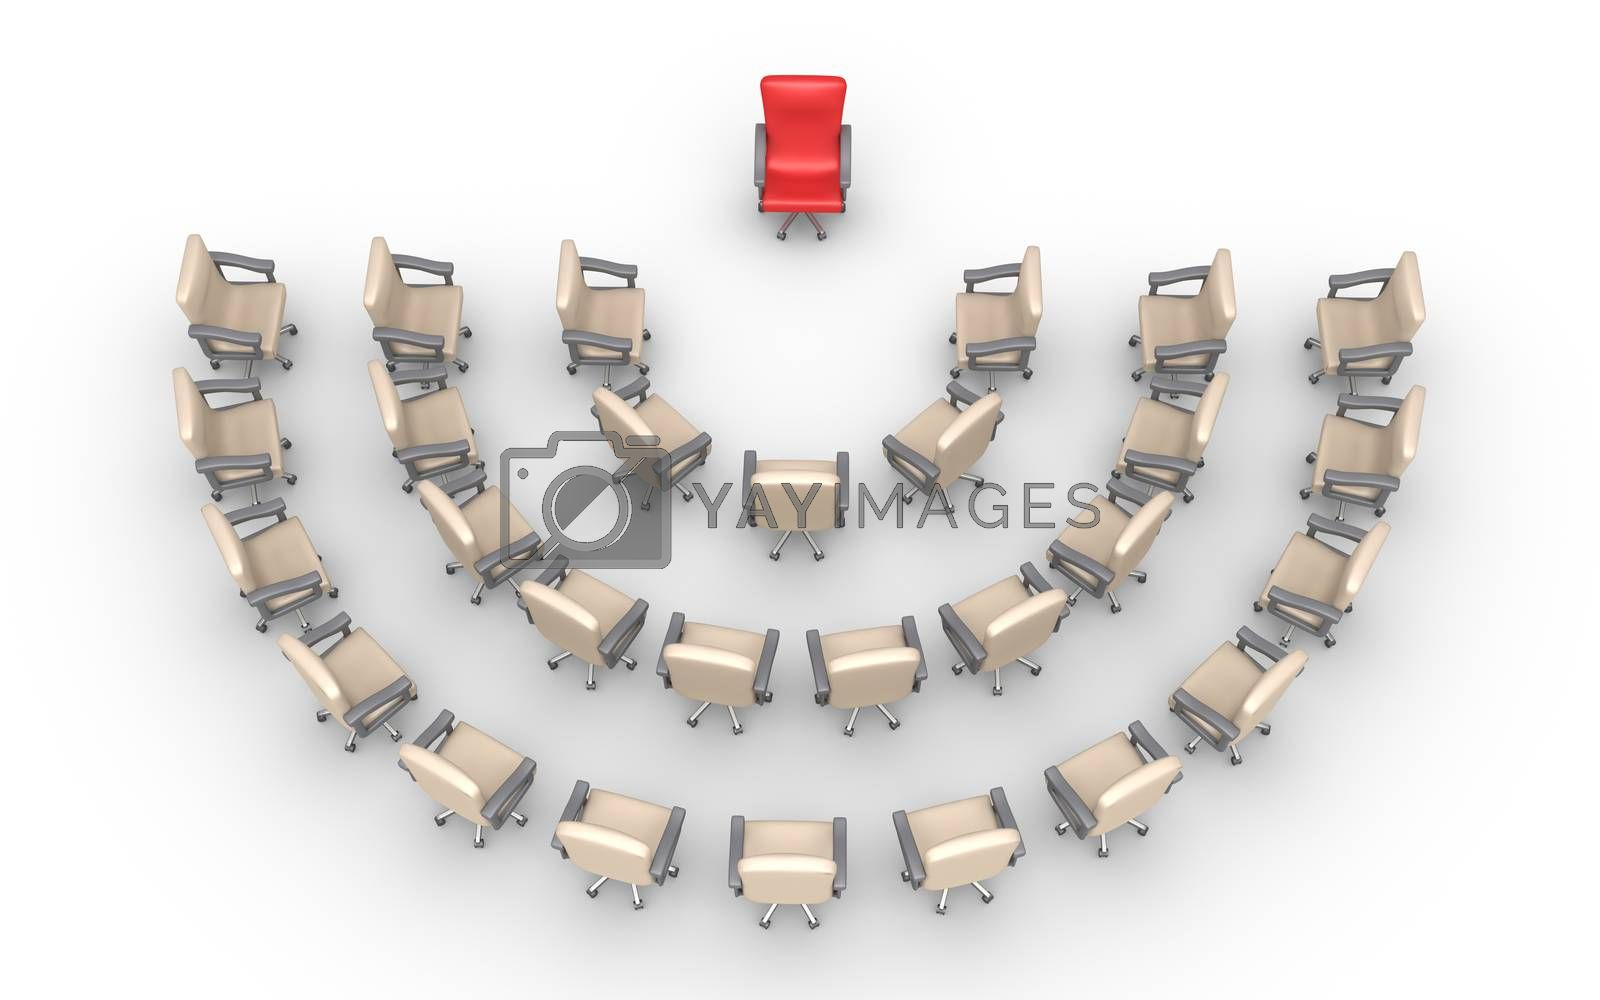 Empty chairs are around one that is of different color